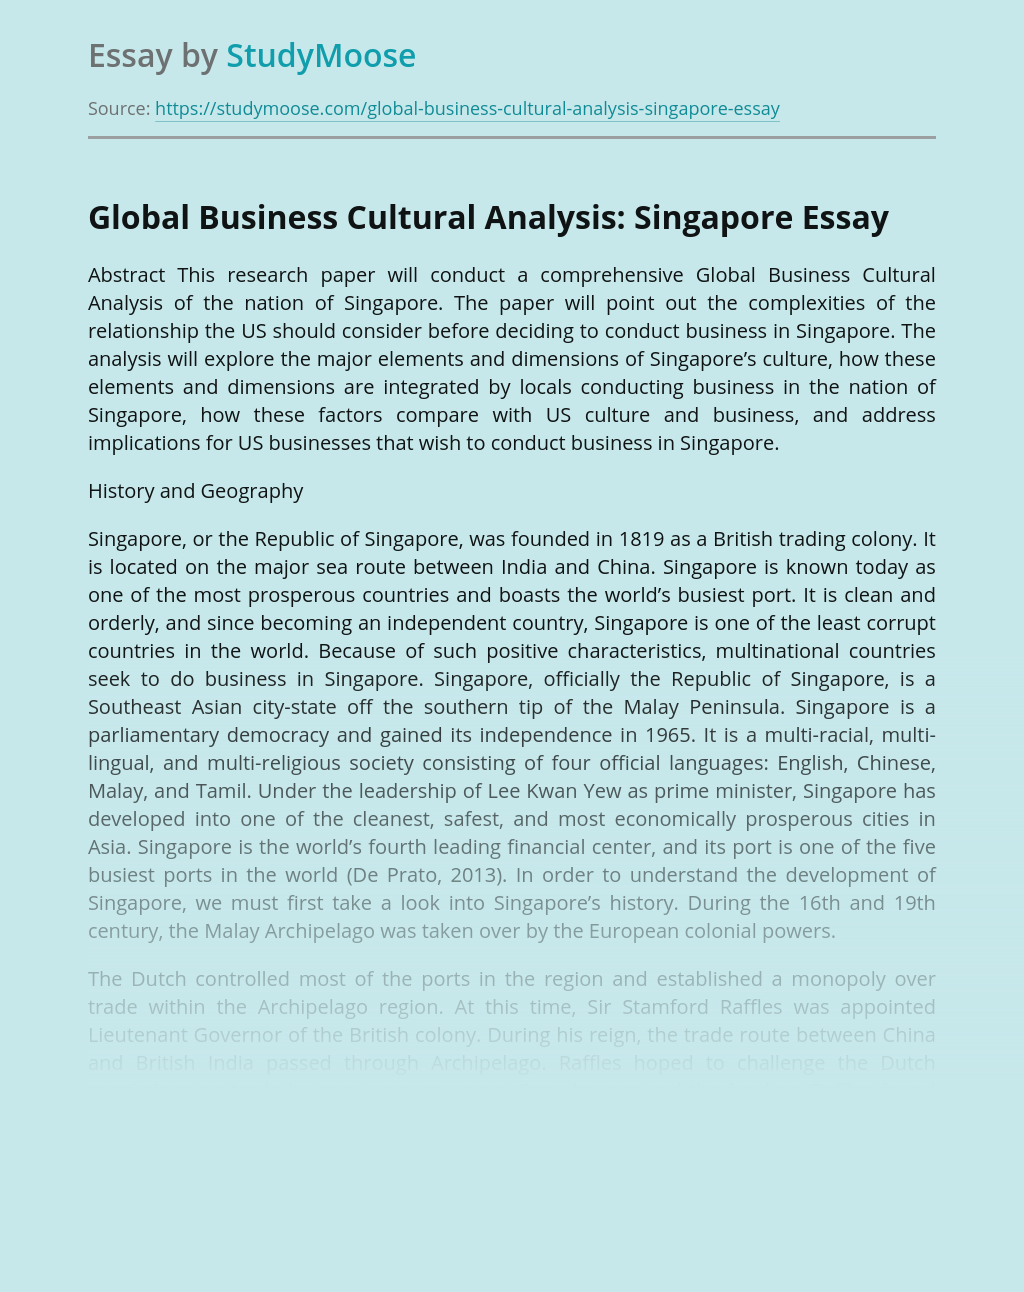 Global Business Cultural Analysis: Singapore